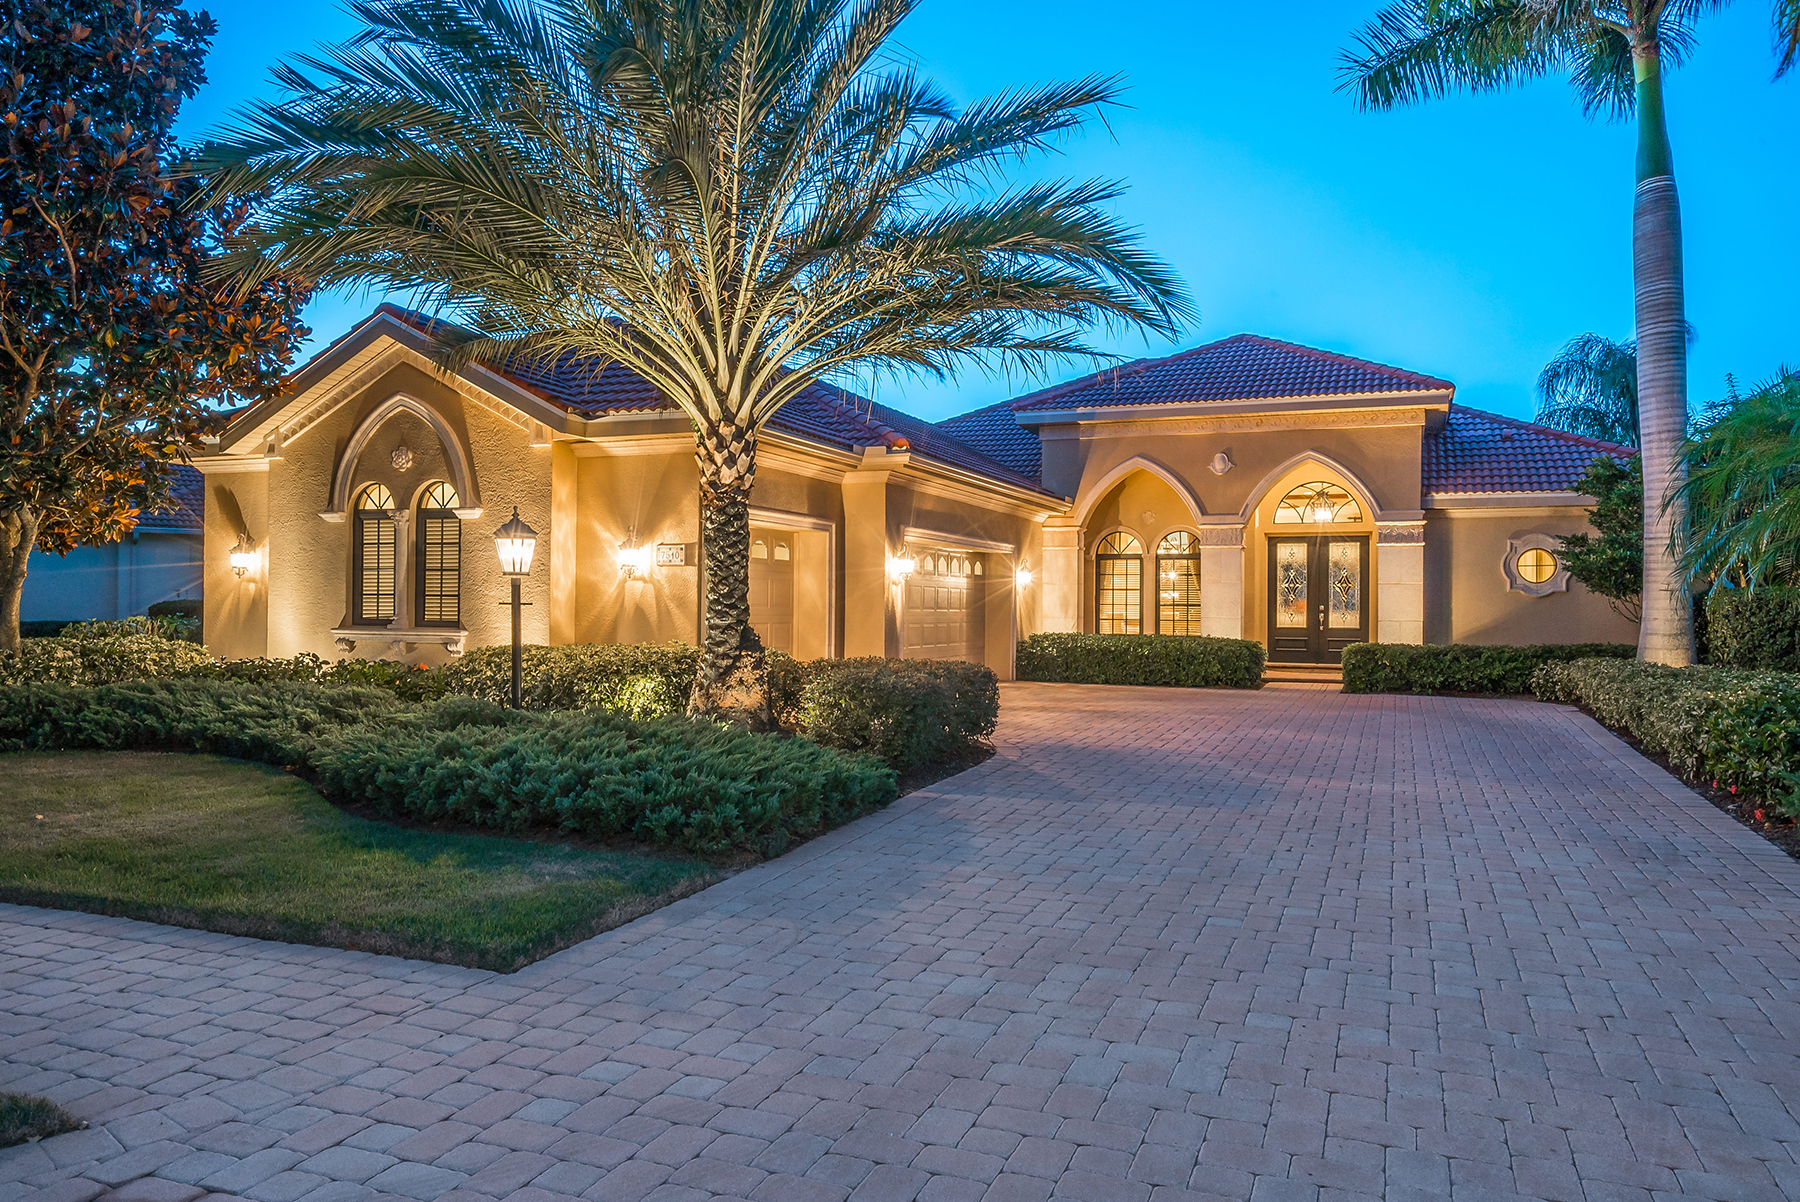 Single Family Home for Sale at LAKEWOOD RANCH COUNTRY CLUB 7510 Mizner Reserve Ct Lakewood Ranch, Florida, 34202 United States